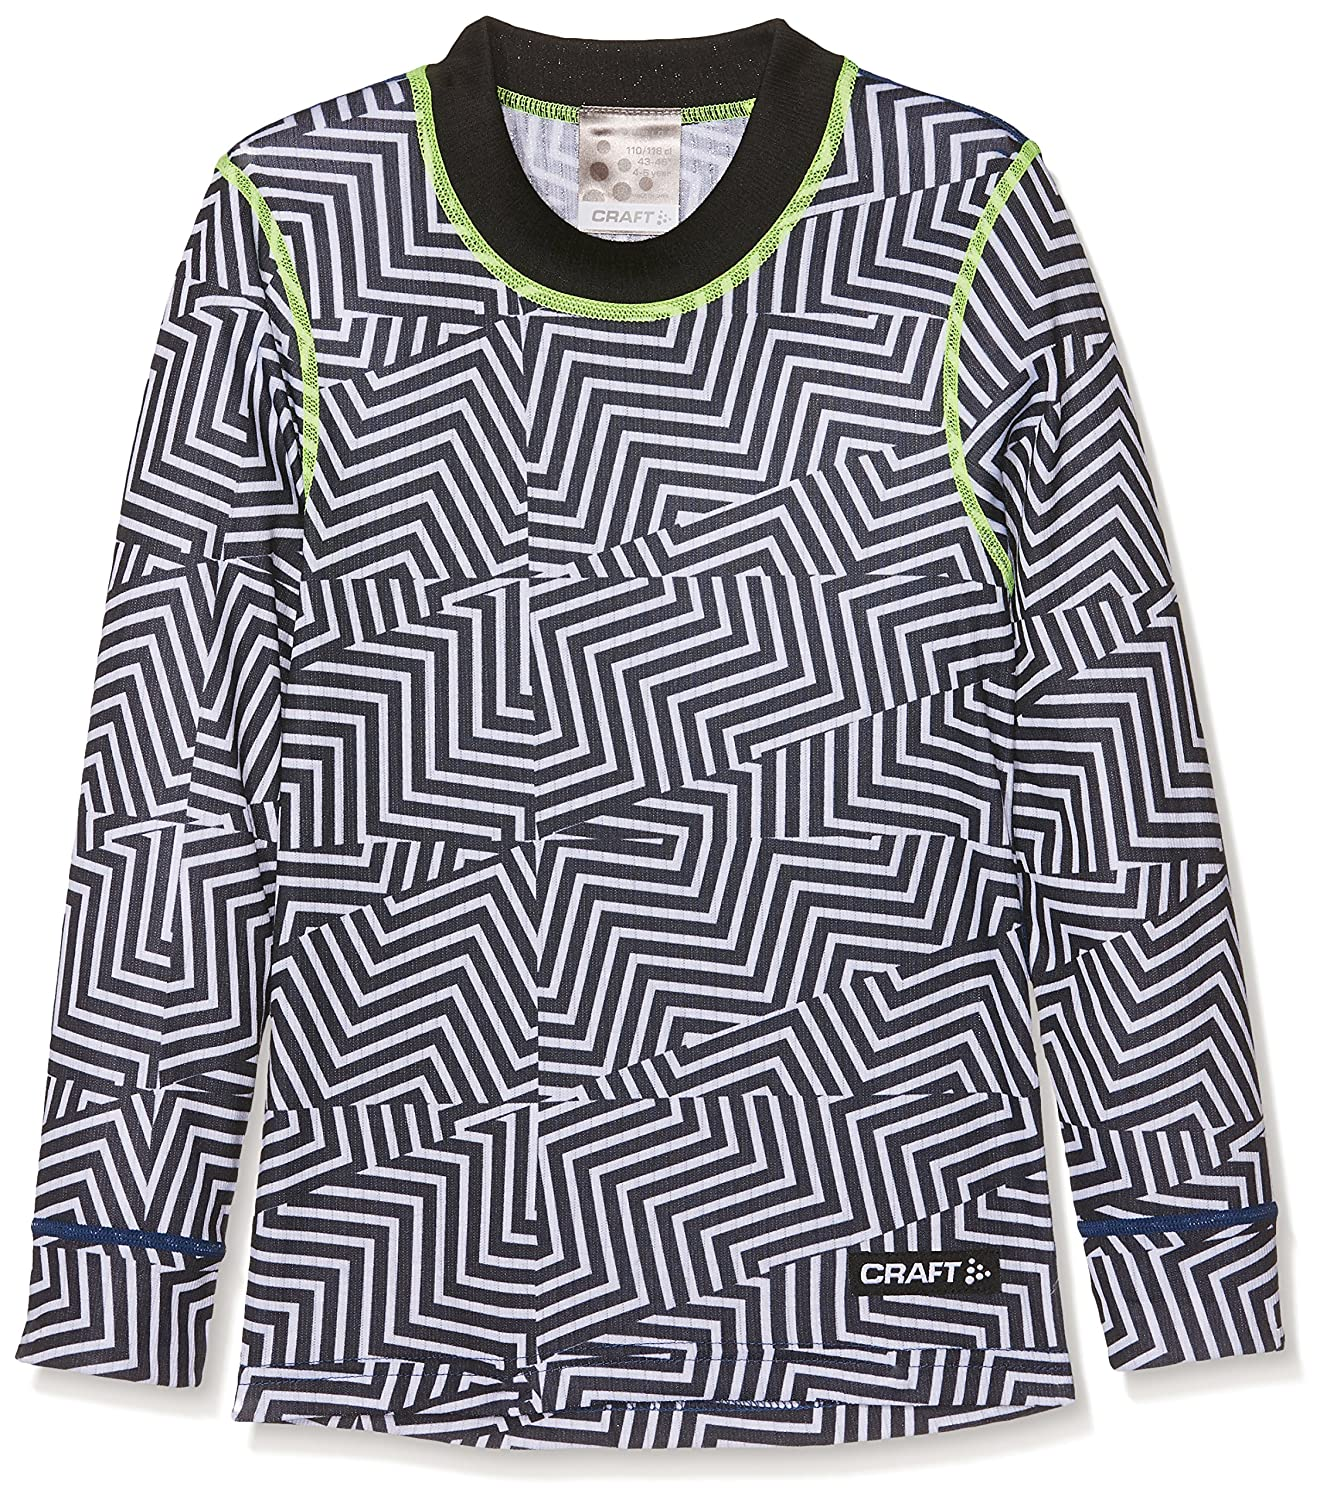 Craft Children's Mix & Match LS Junior P Maze Base Layer, Black, 146/152 CRAF8|#Craft 1904518